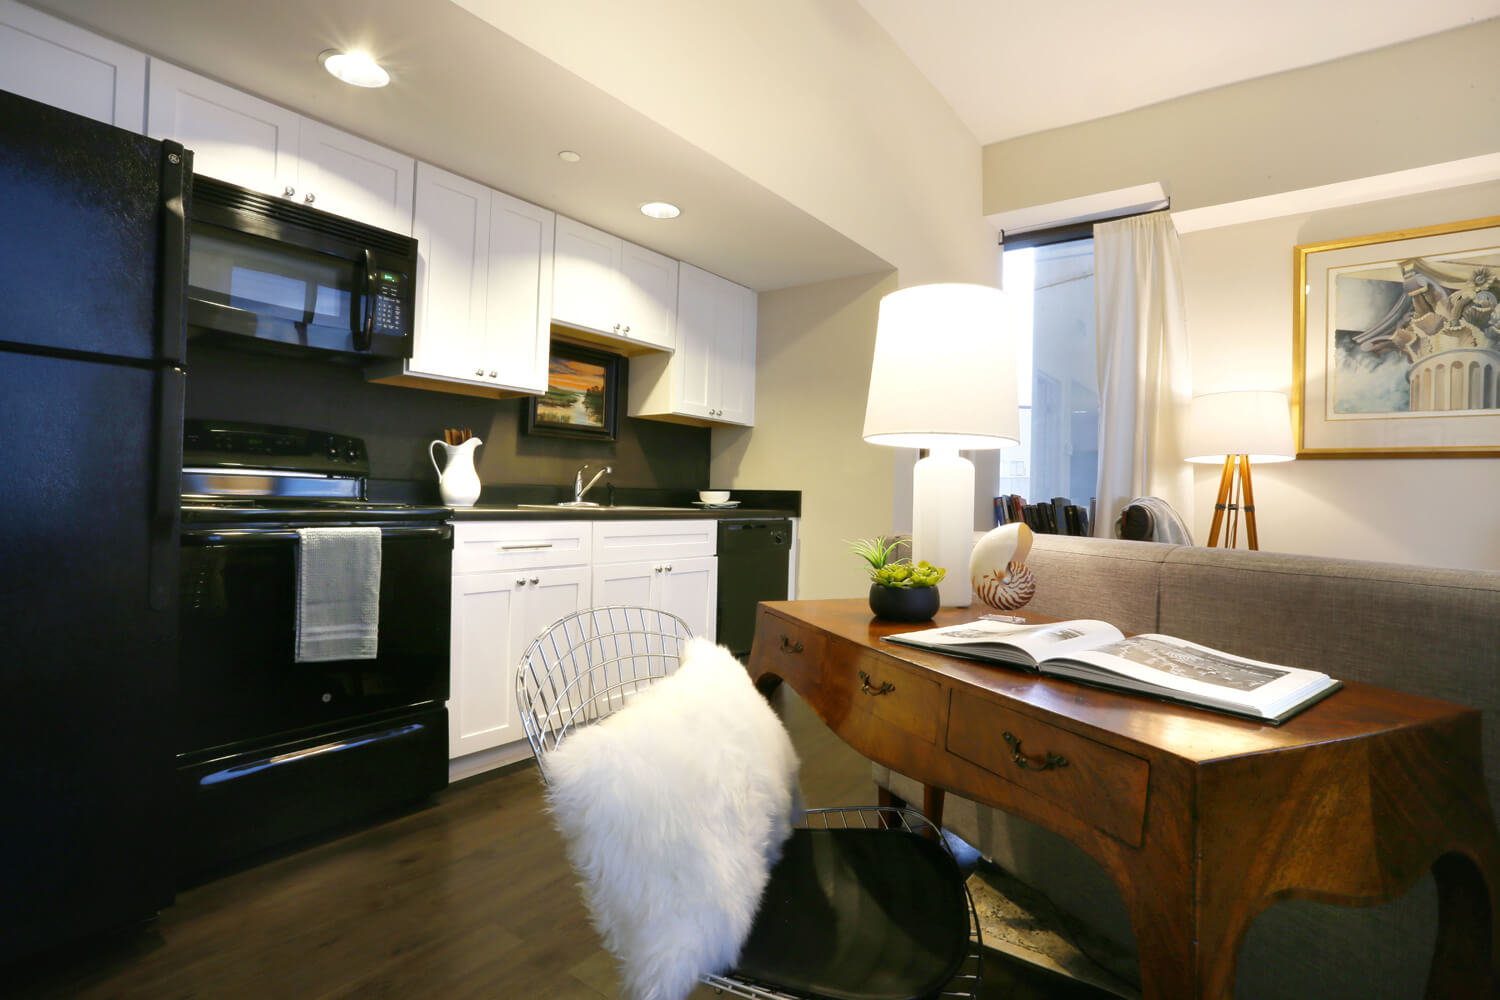 The 40 Four Building Designed by Foshee Architecture – Apartment Kitchen